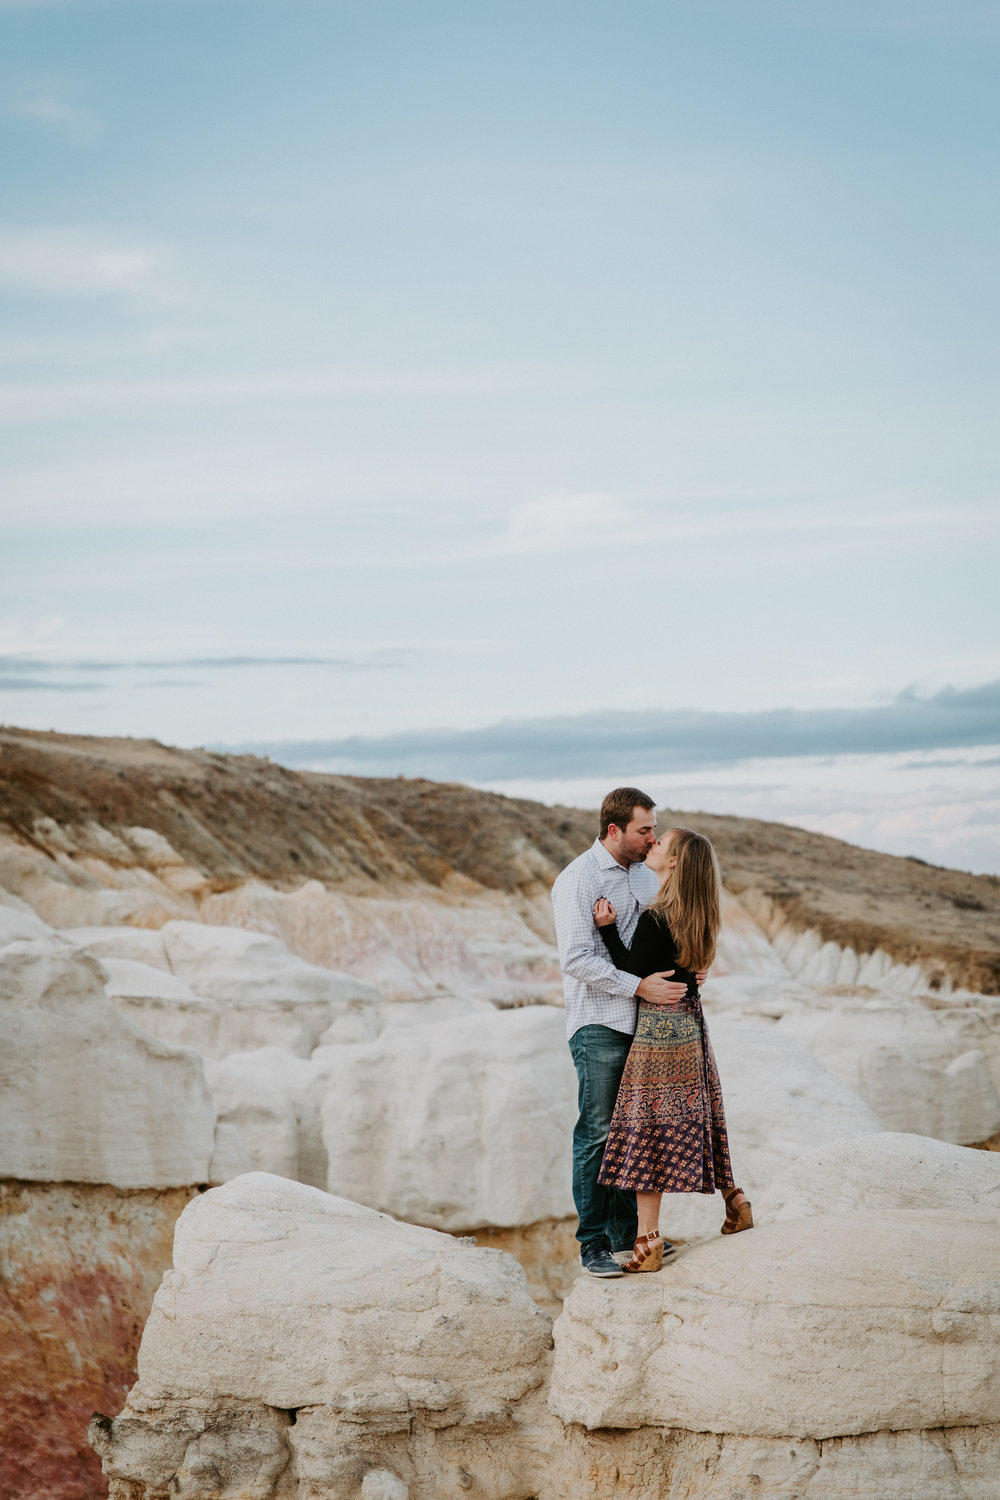 Chris+MaggieENGAGED-32.jpg